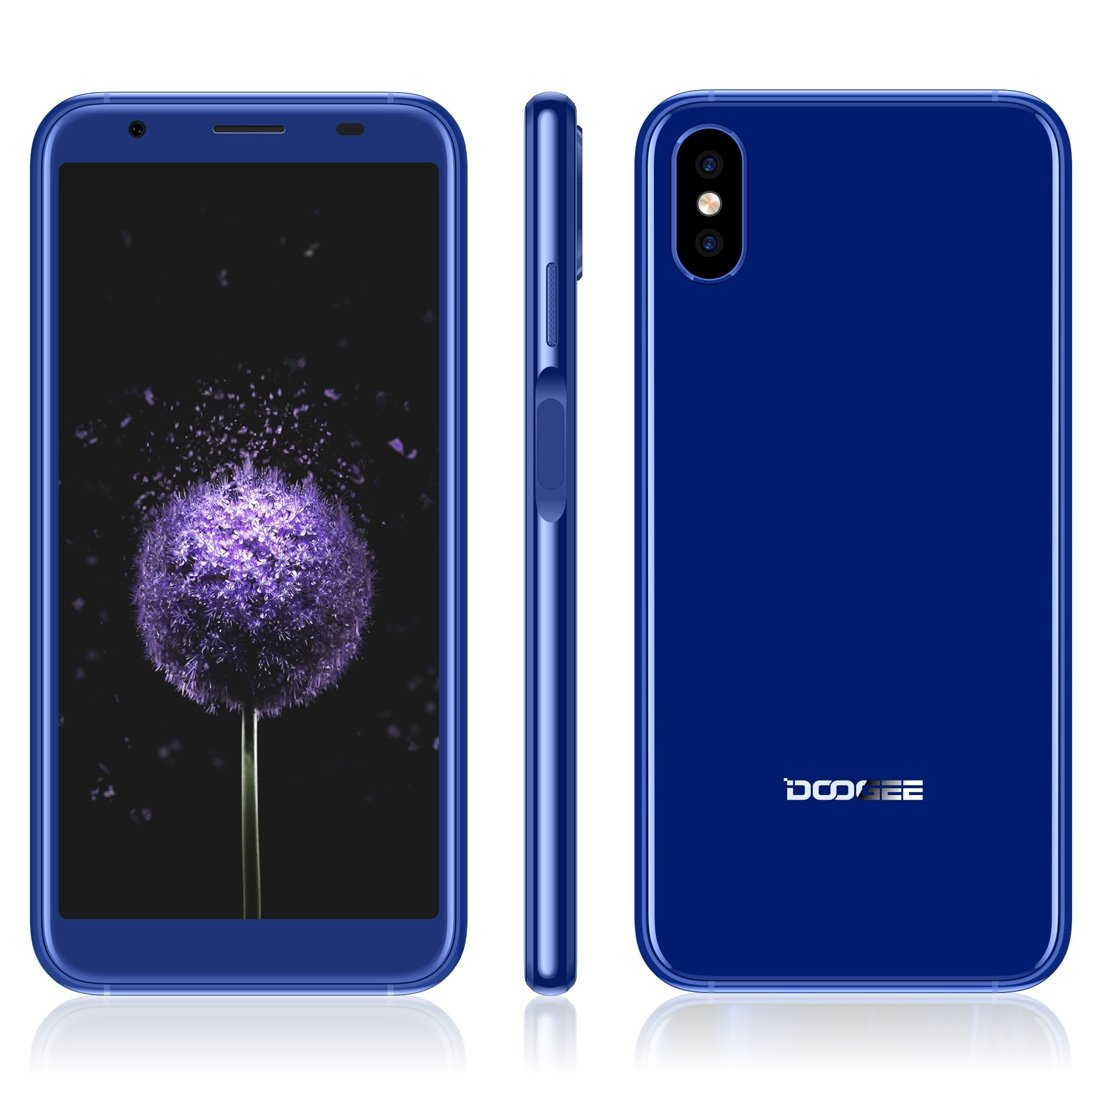 DOOGEE X55 1GB+16GB 5.5 inch Android 7.1 MTK6580 Quad Core up to 1.3GHz GSM & WCDMA (Blue)